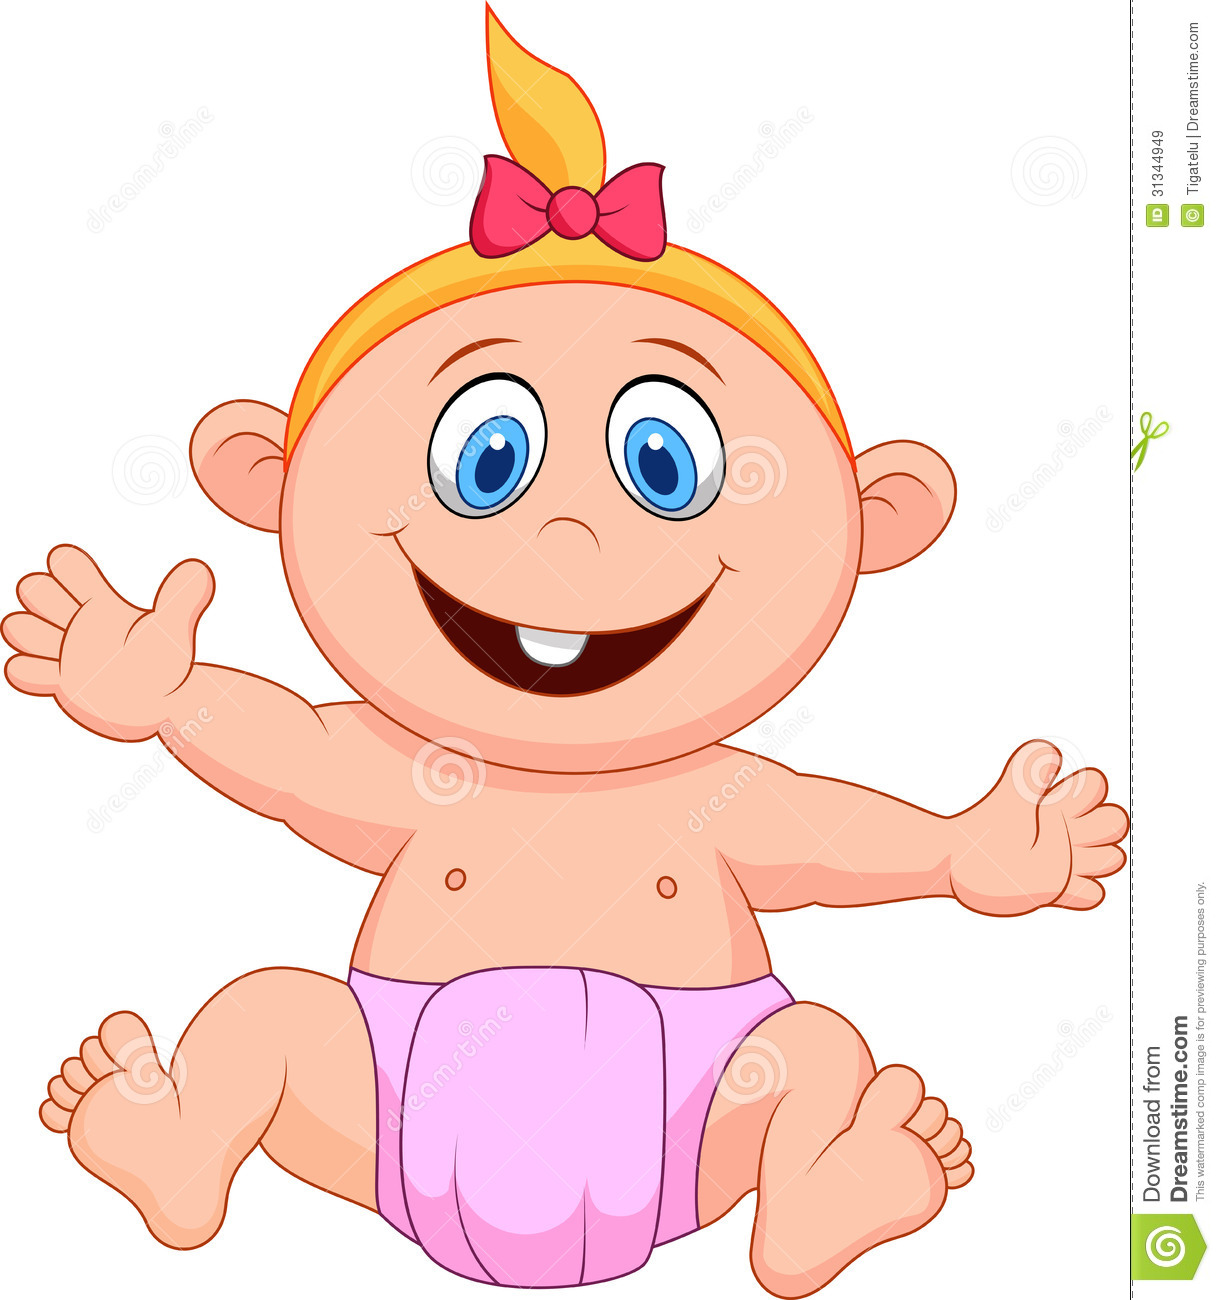 Photo about Twin Baby Boy And Girl With Pacifiers and Toys. Illustration of cheerful, people, illustration - Find this Pin and more on Рисунки by Неля. Baby Cartoon Vectores en stock y Arte vectorial.